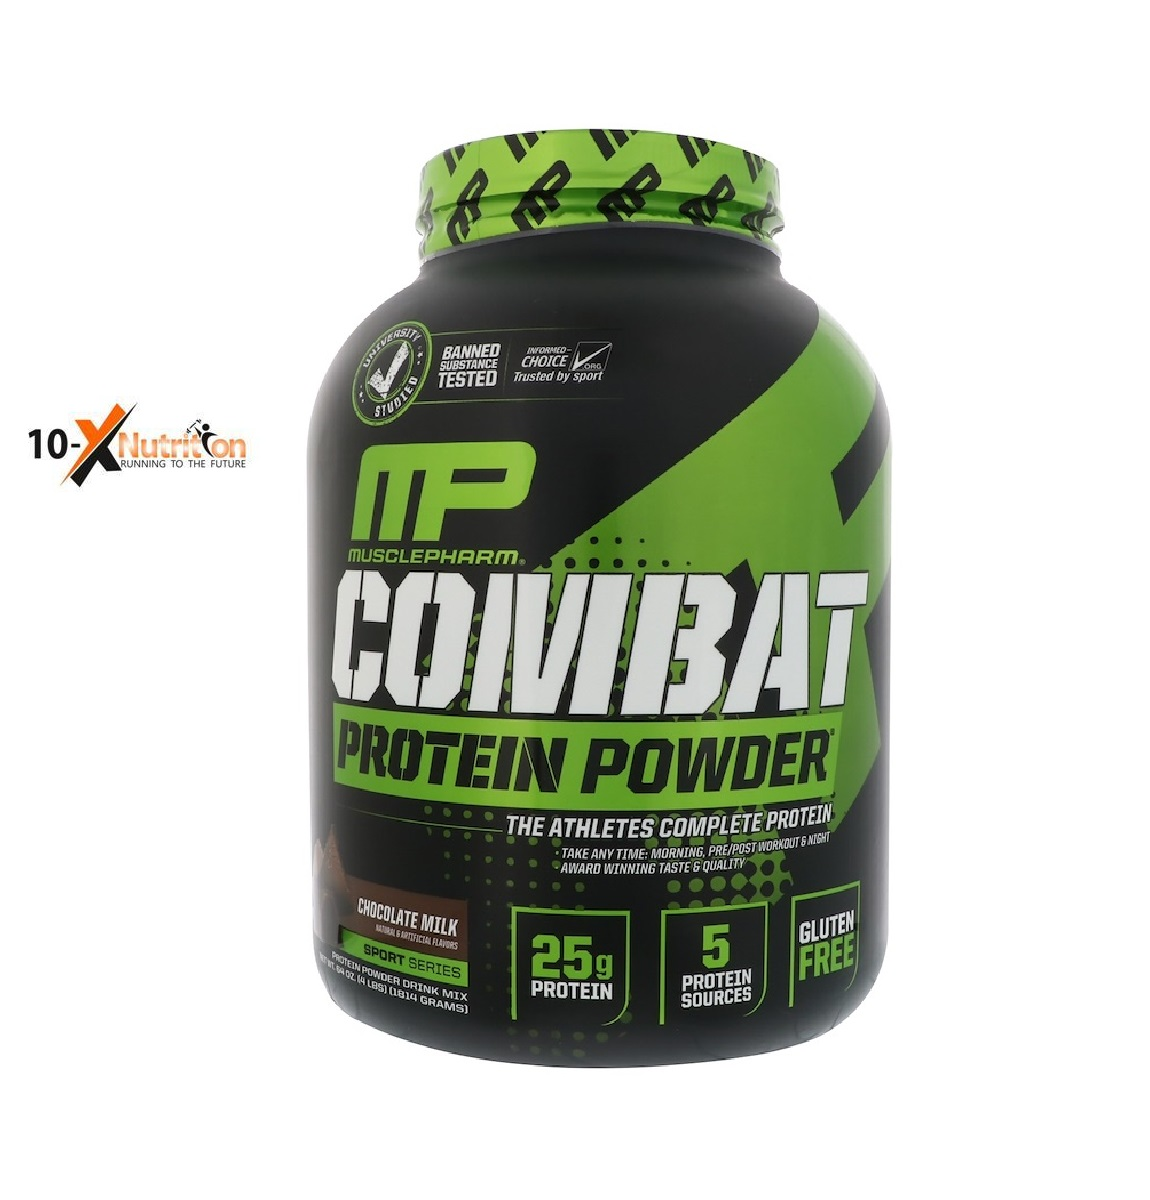 musclepharm 100 whey protein review